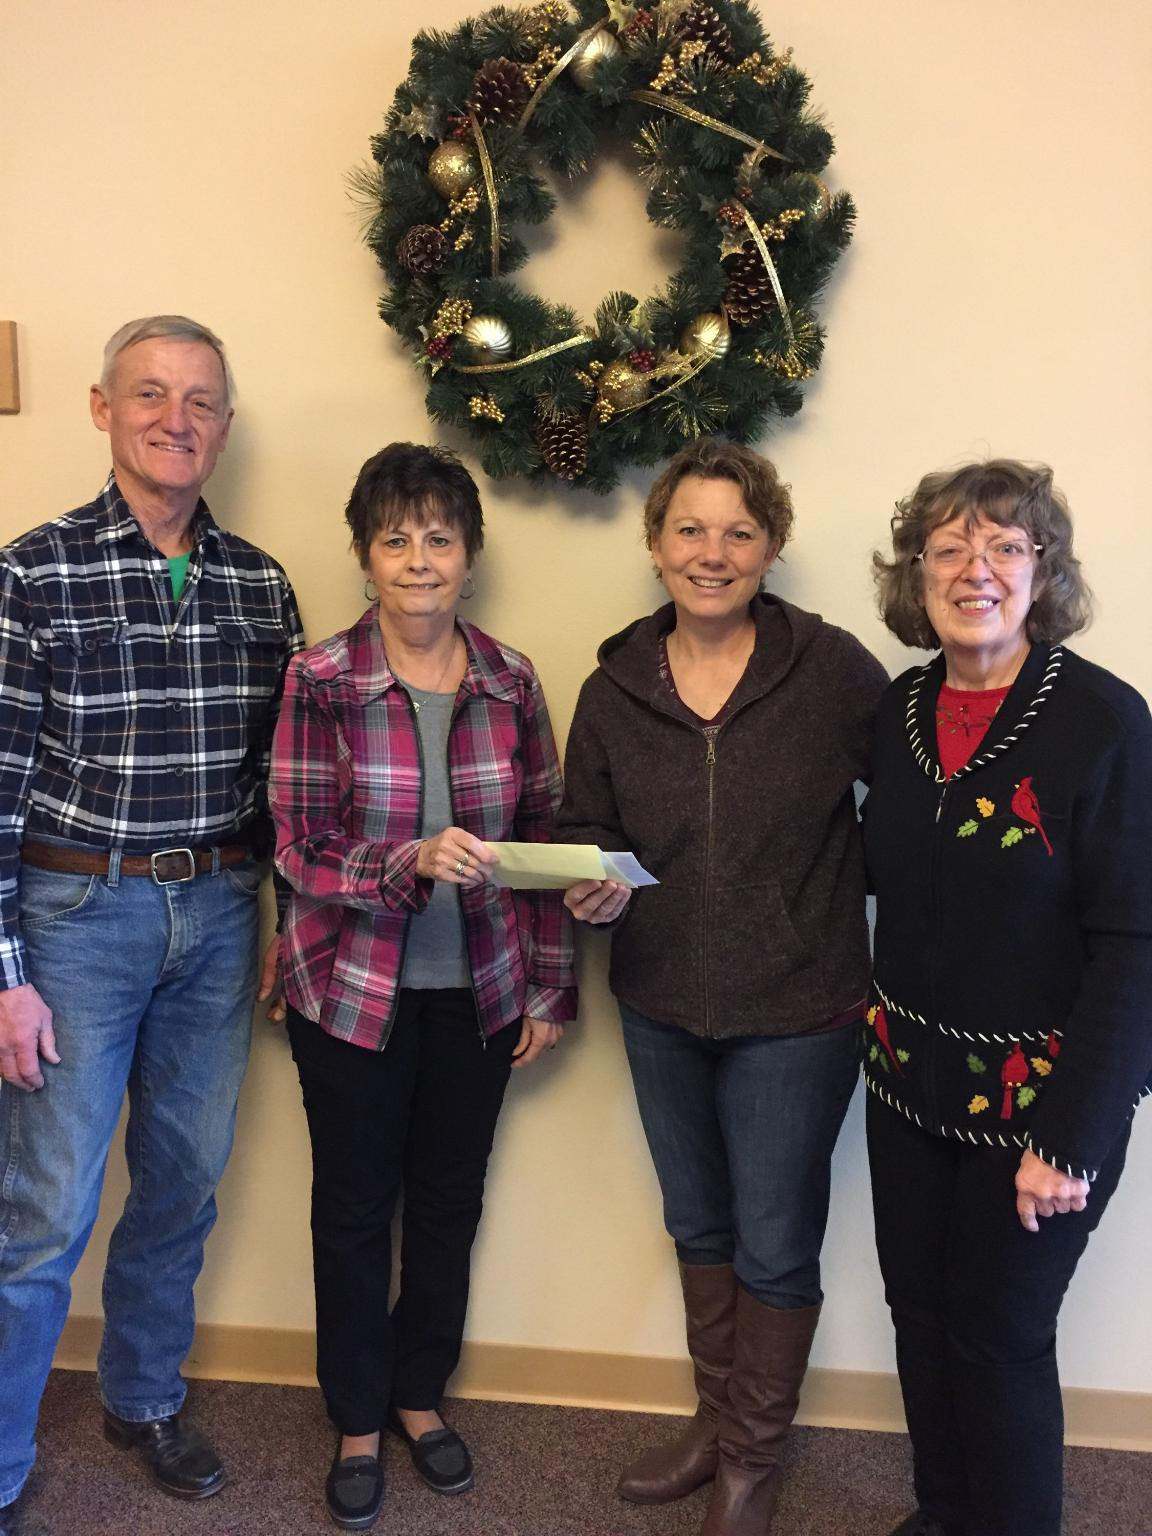 December 2, President Judy Spath and Anne Handschke present a check to Jeremiah's Crossing founders Roger and Kathleen Harris.